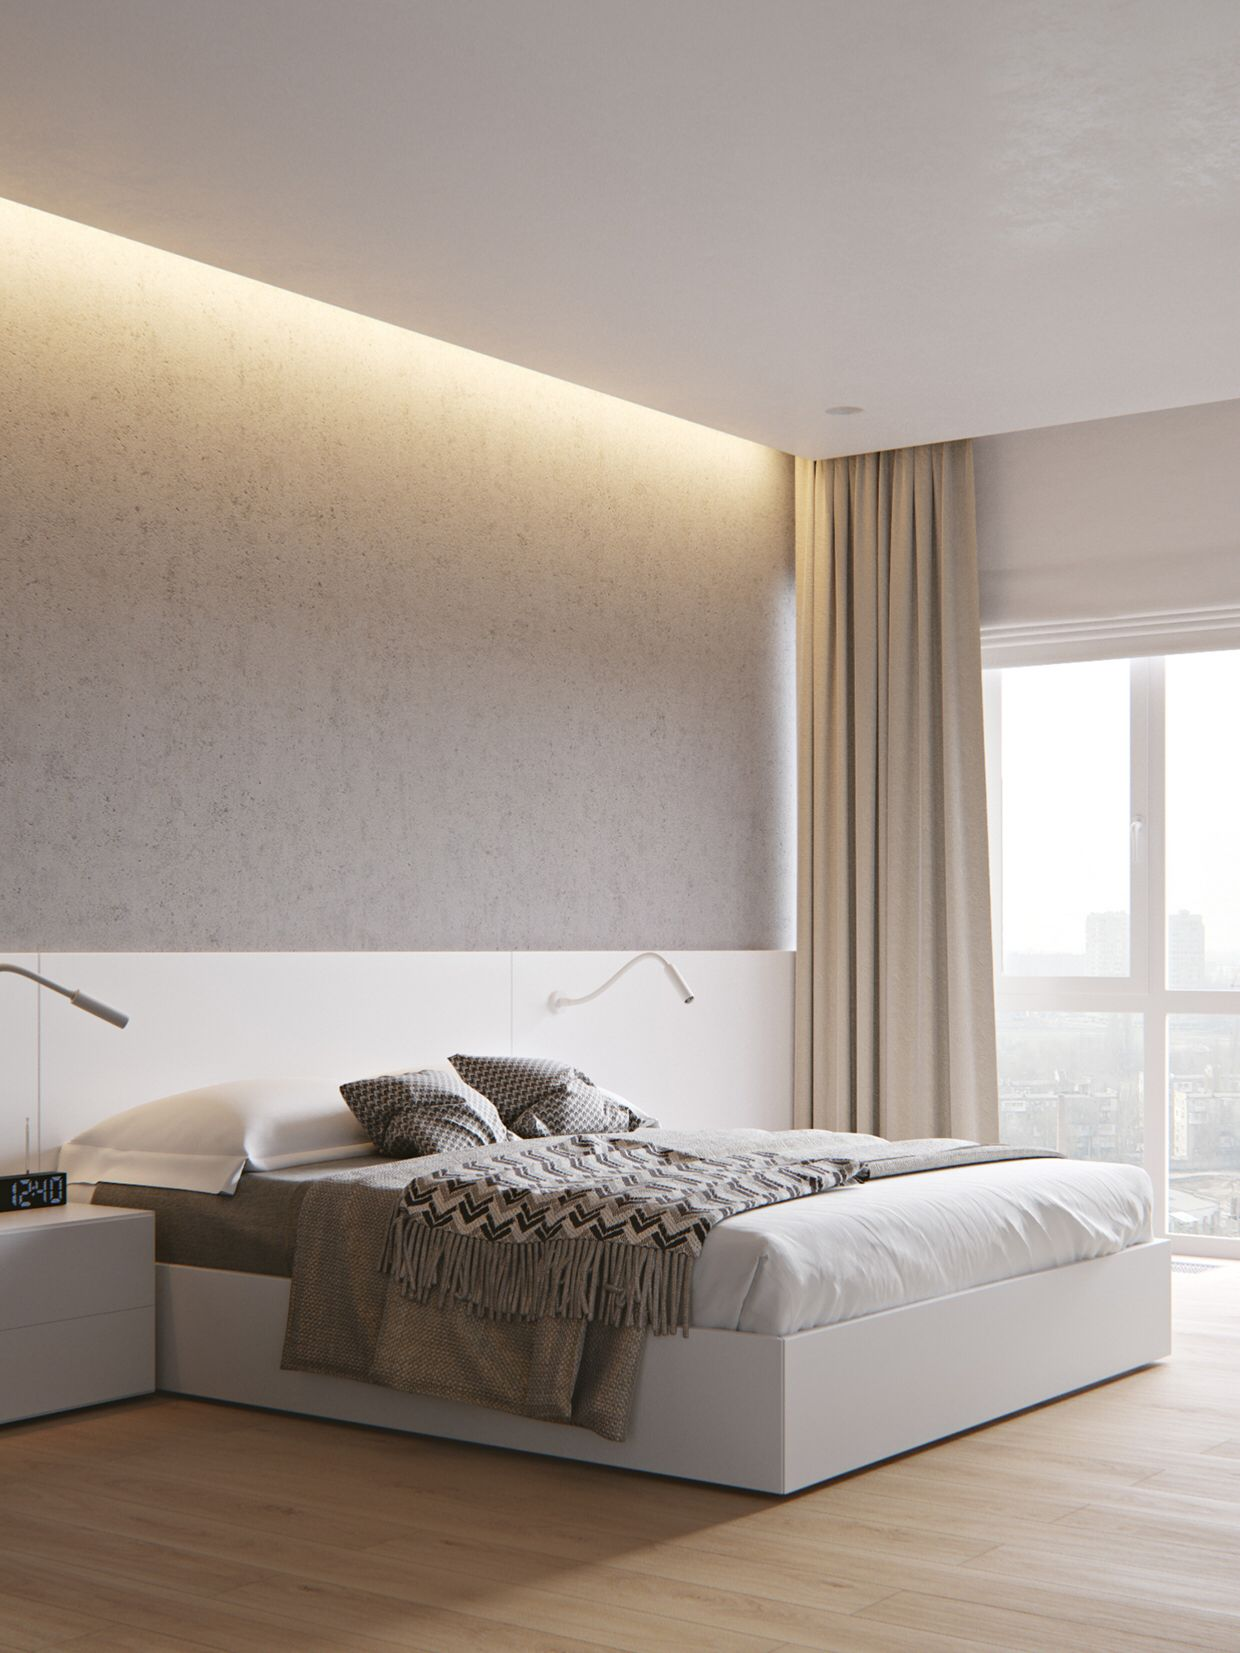 Pin by beingalmost on Bedroom in 2019 Modern minimalist